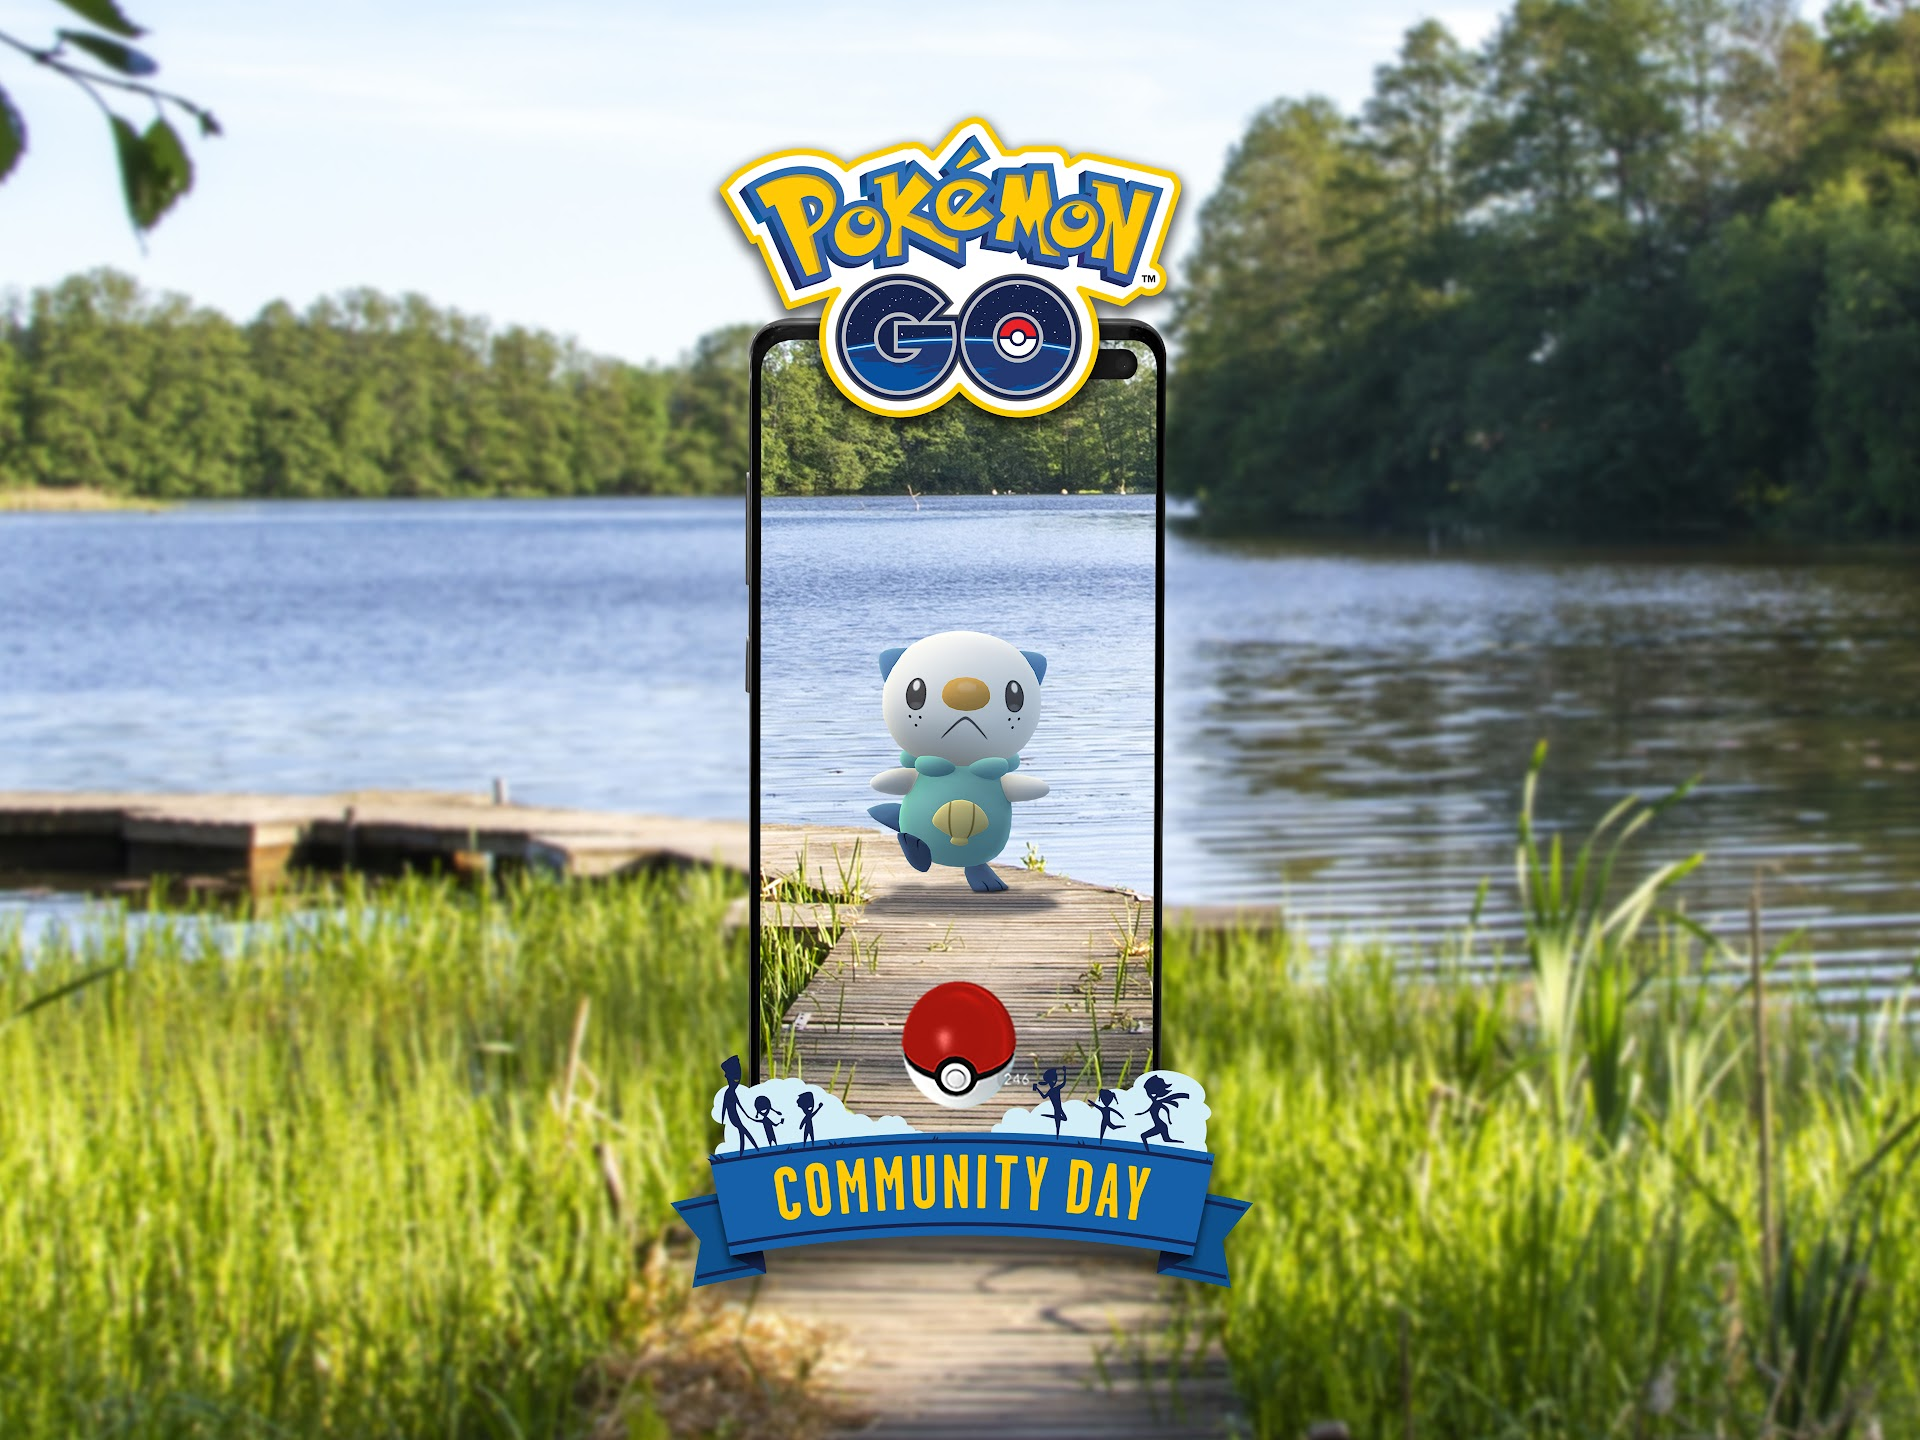 Oshawott, a little otter Pokémon, stands framed by a smart phone in front of a river or lake